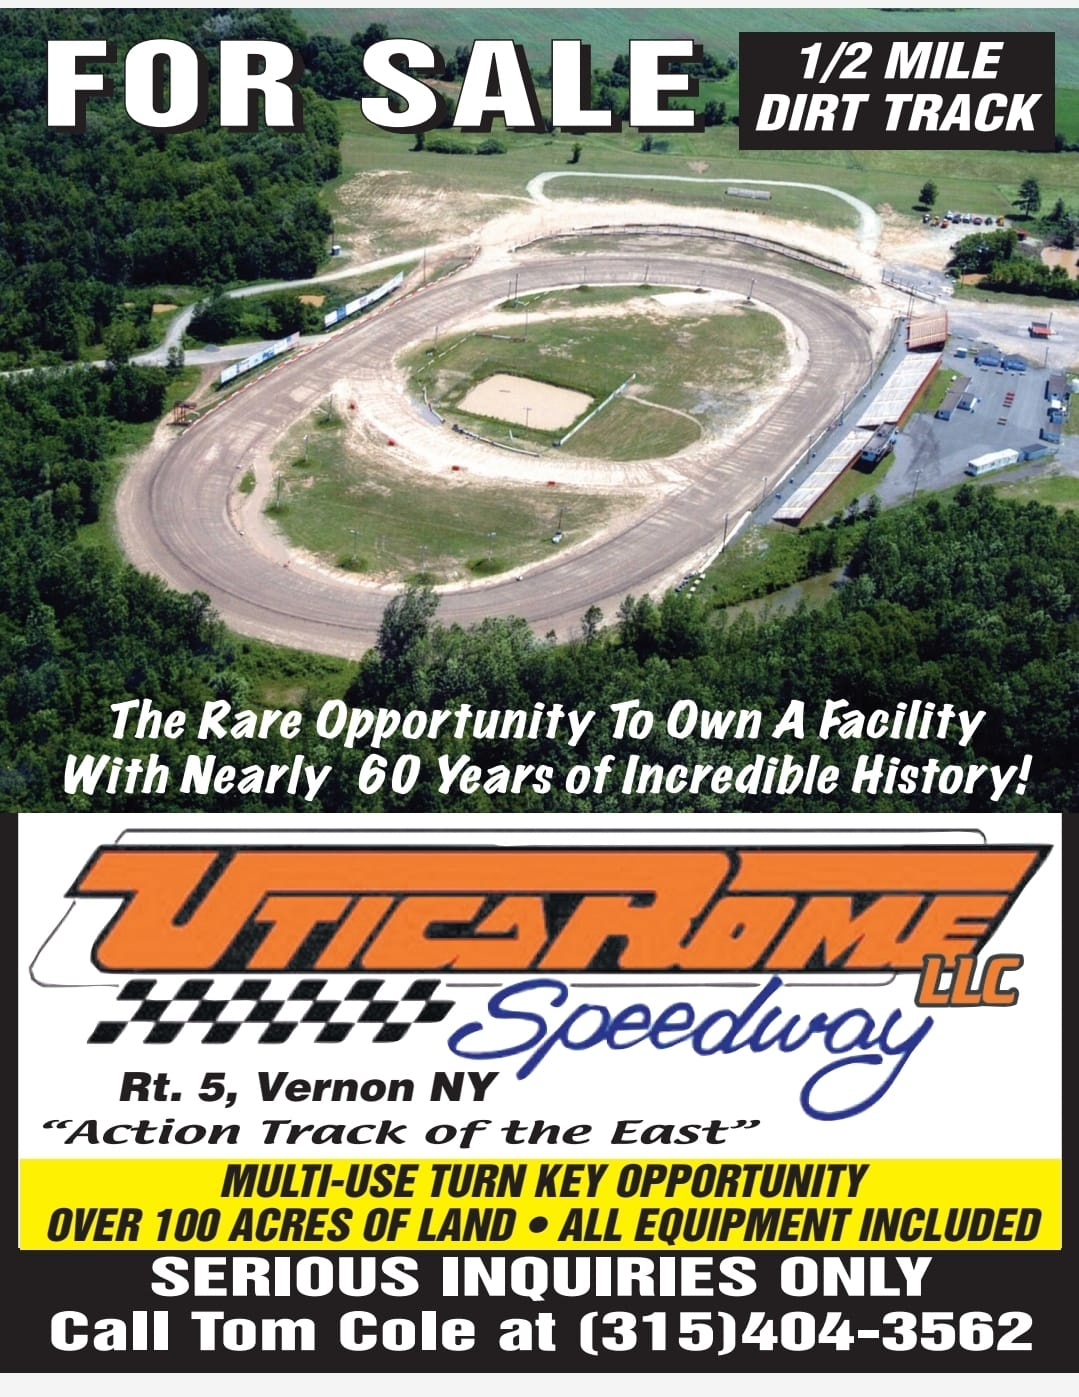 Utica-Rome Speedway for sale